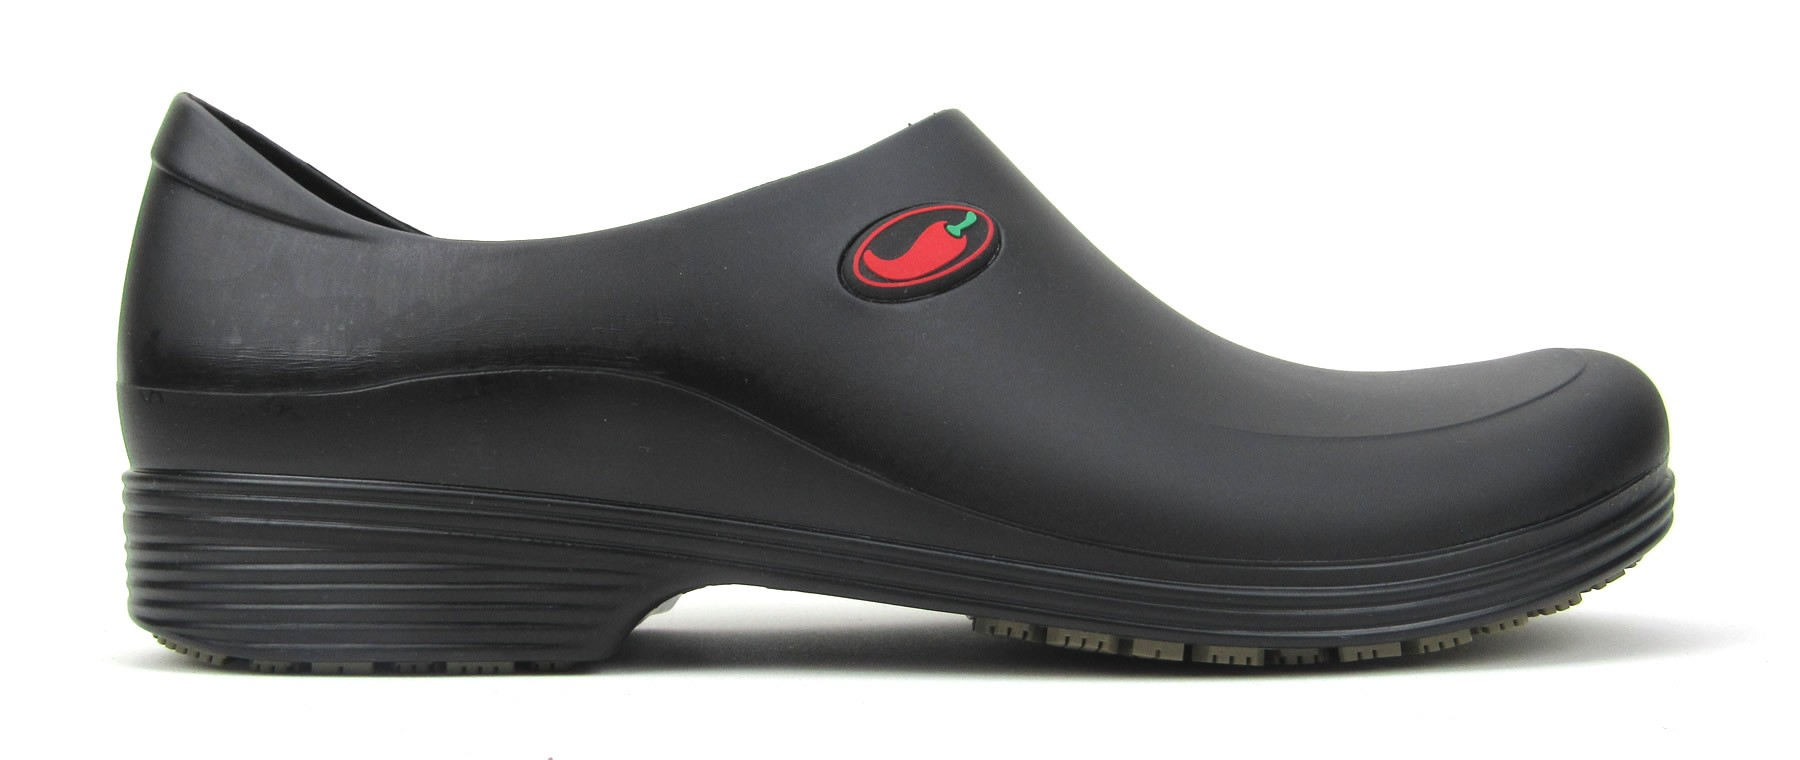 Non-Slip Chef Shoes for Men- Black with Red Pepper